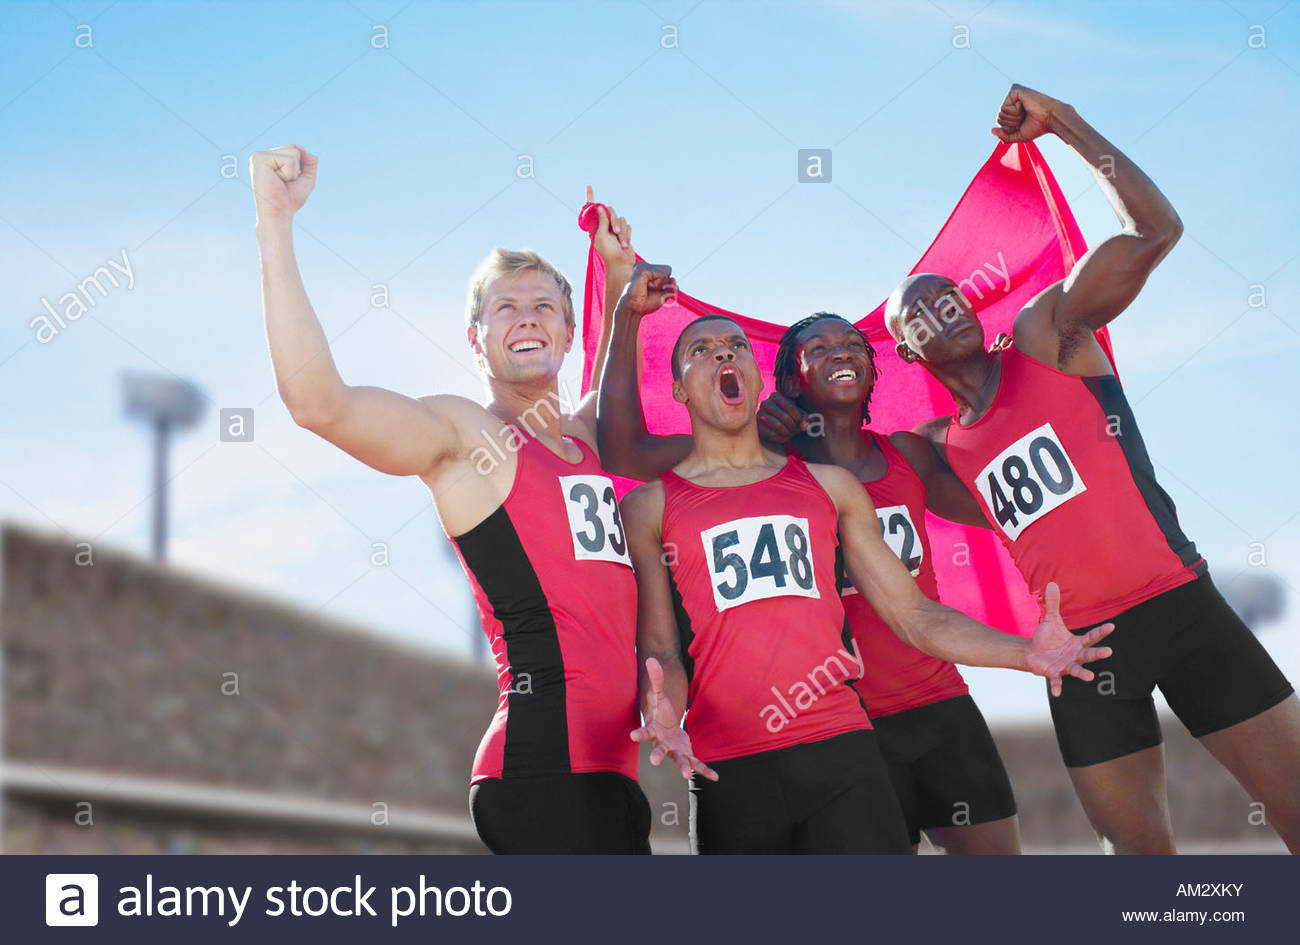 Four athletes cheering together - Stock Image